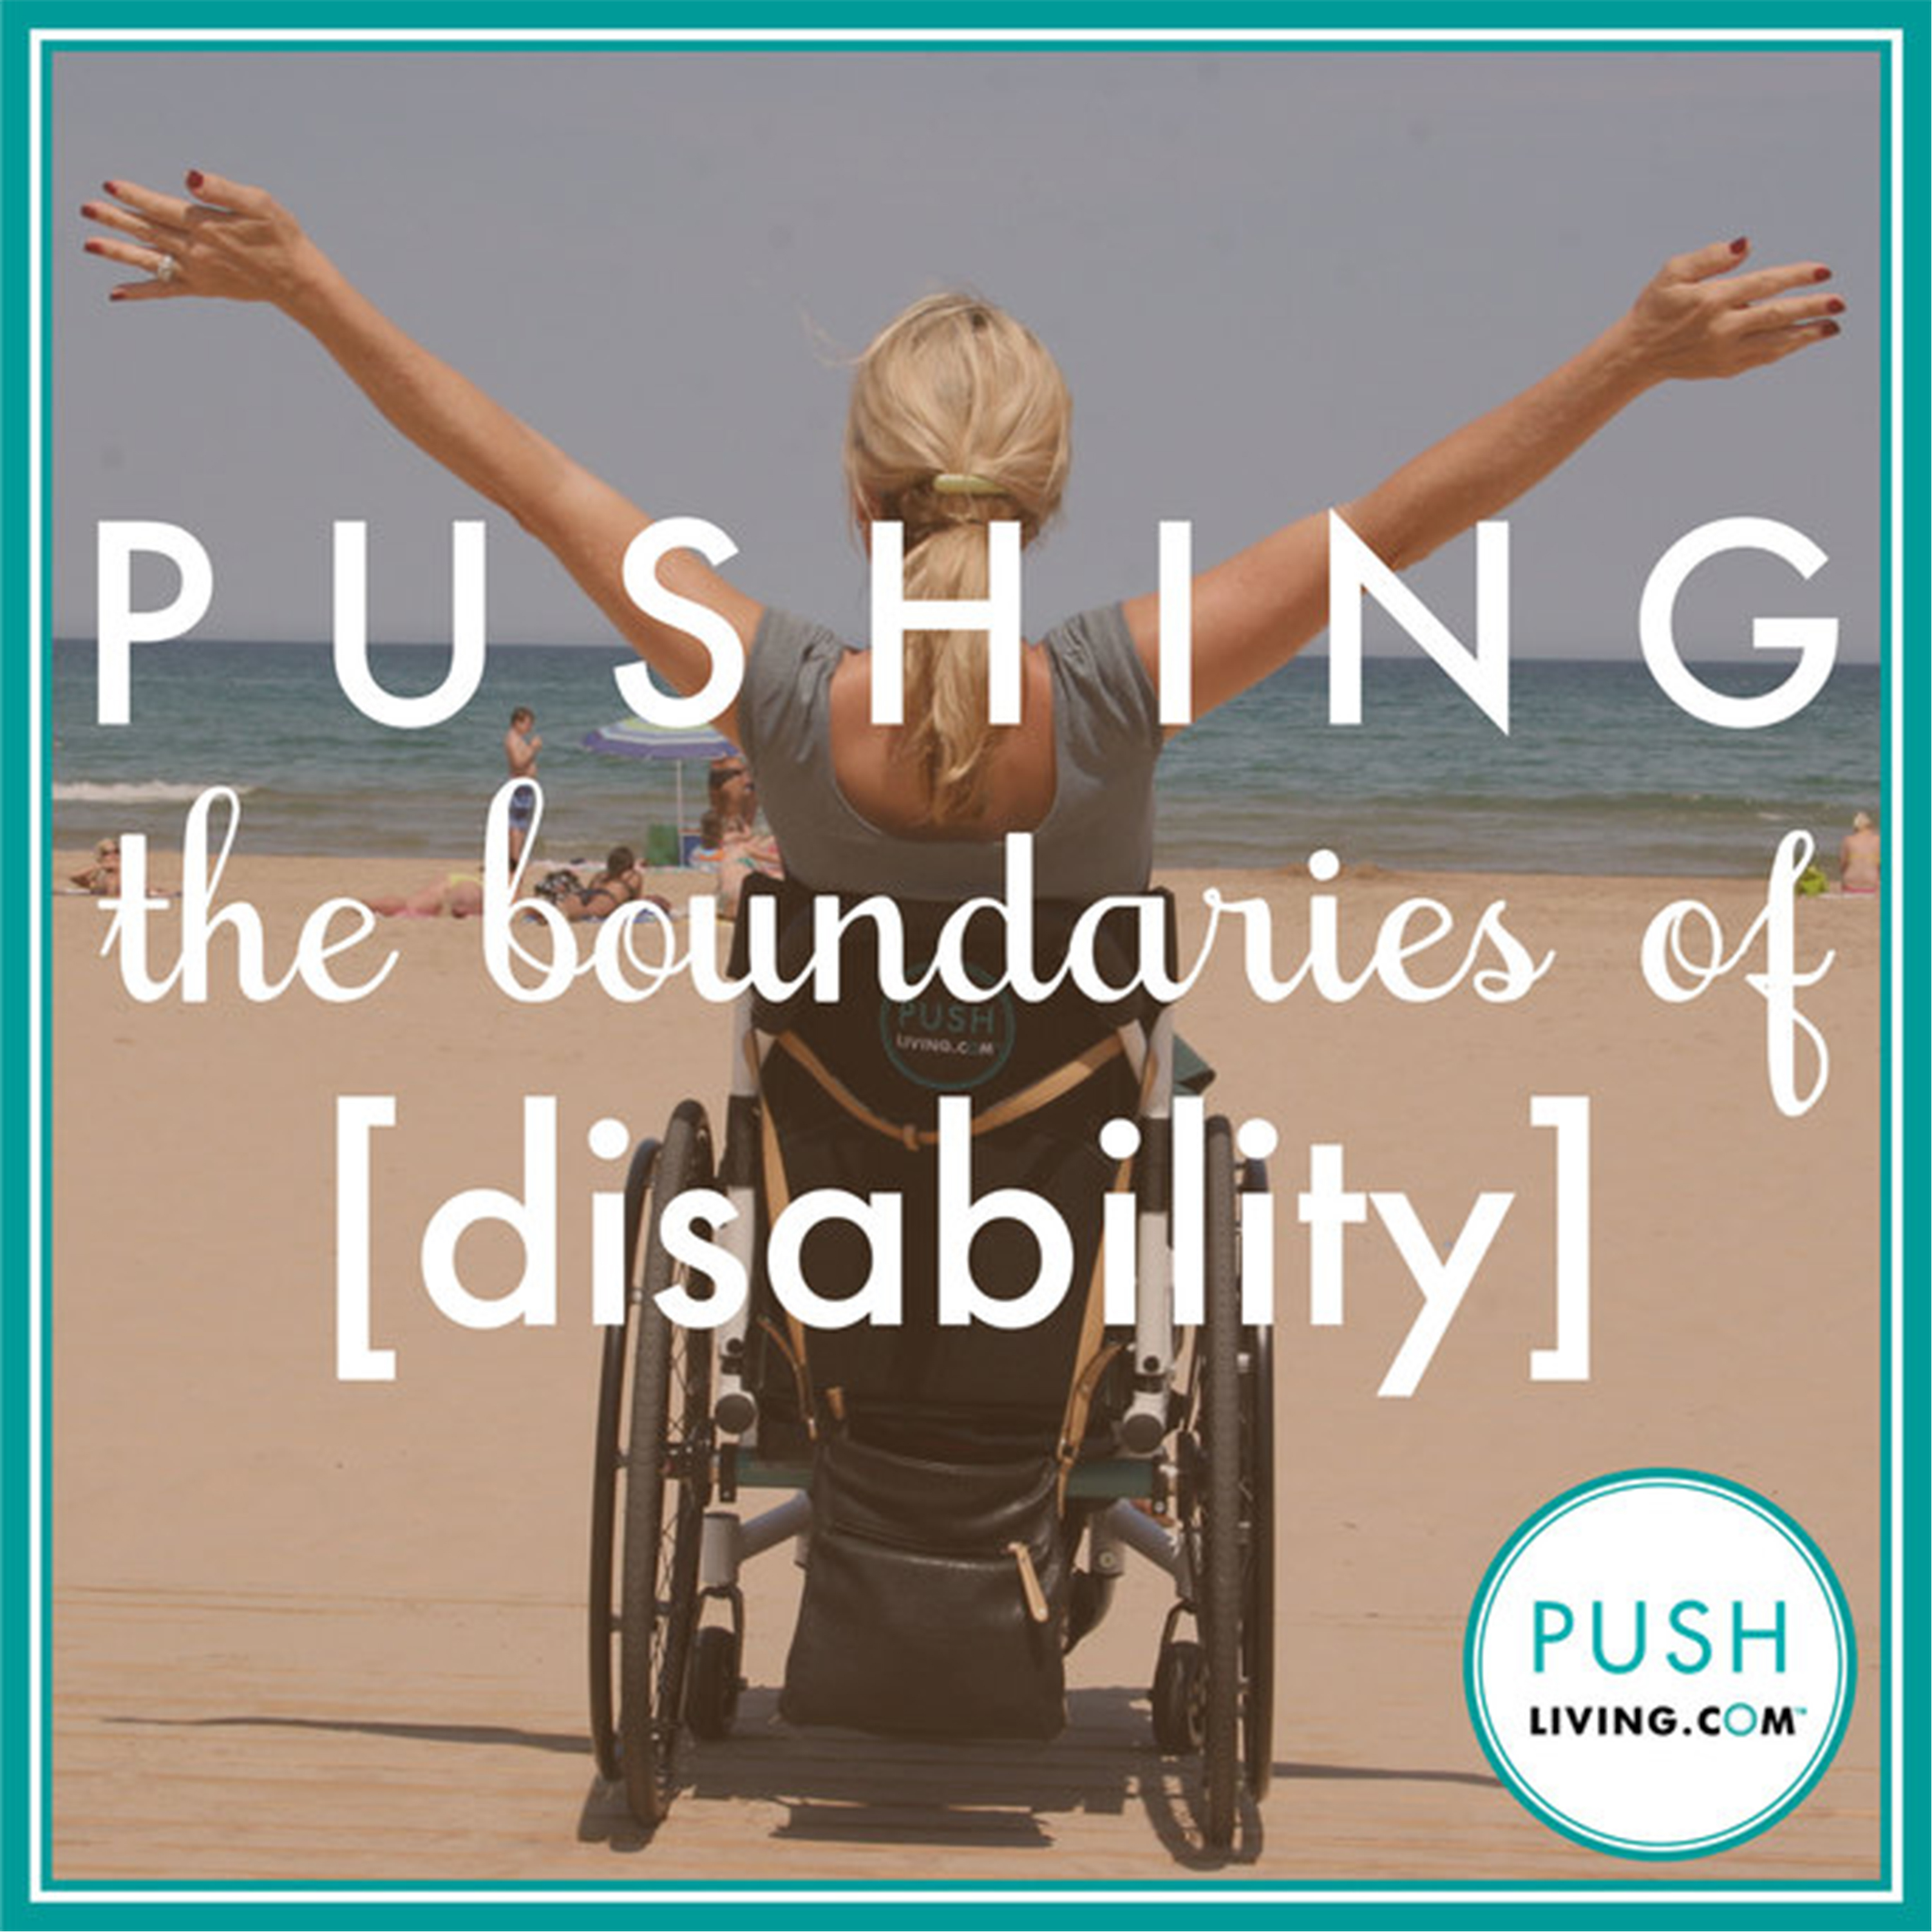 PUSHLiving.com Wheelchair Accessible Living